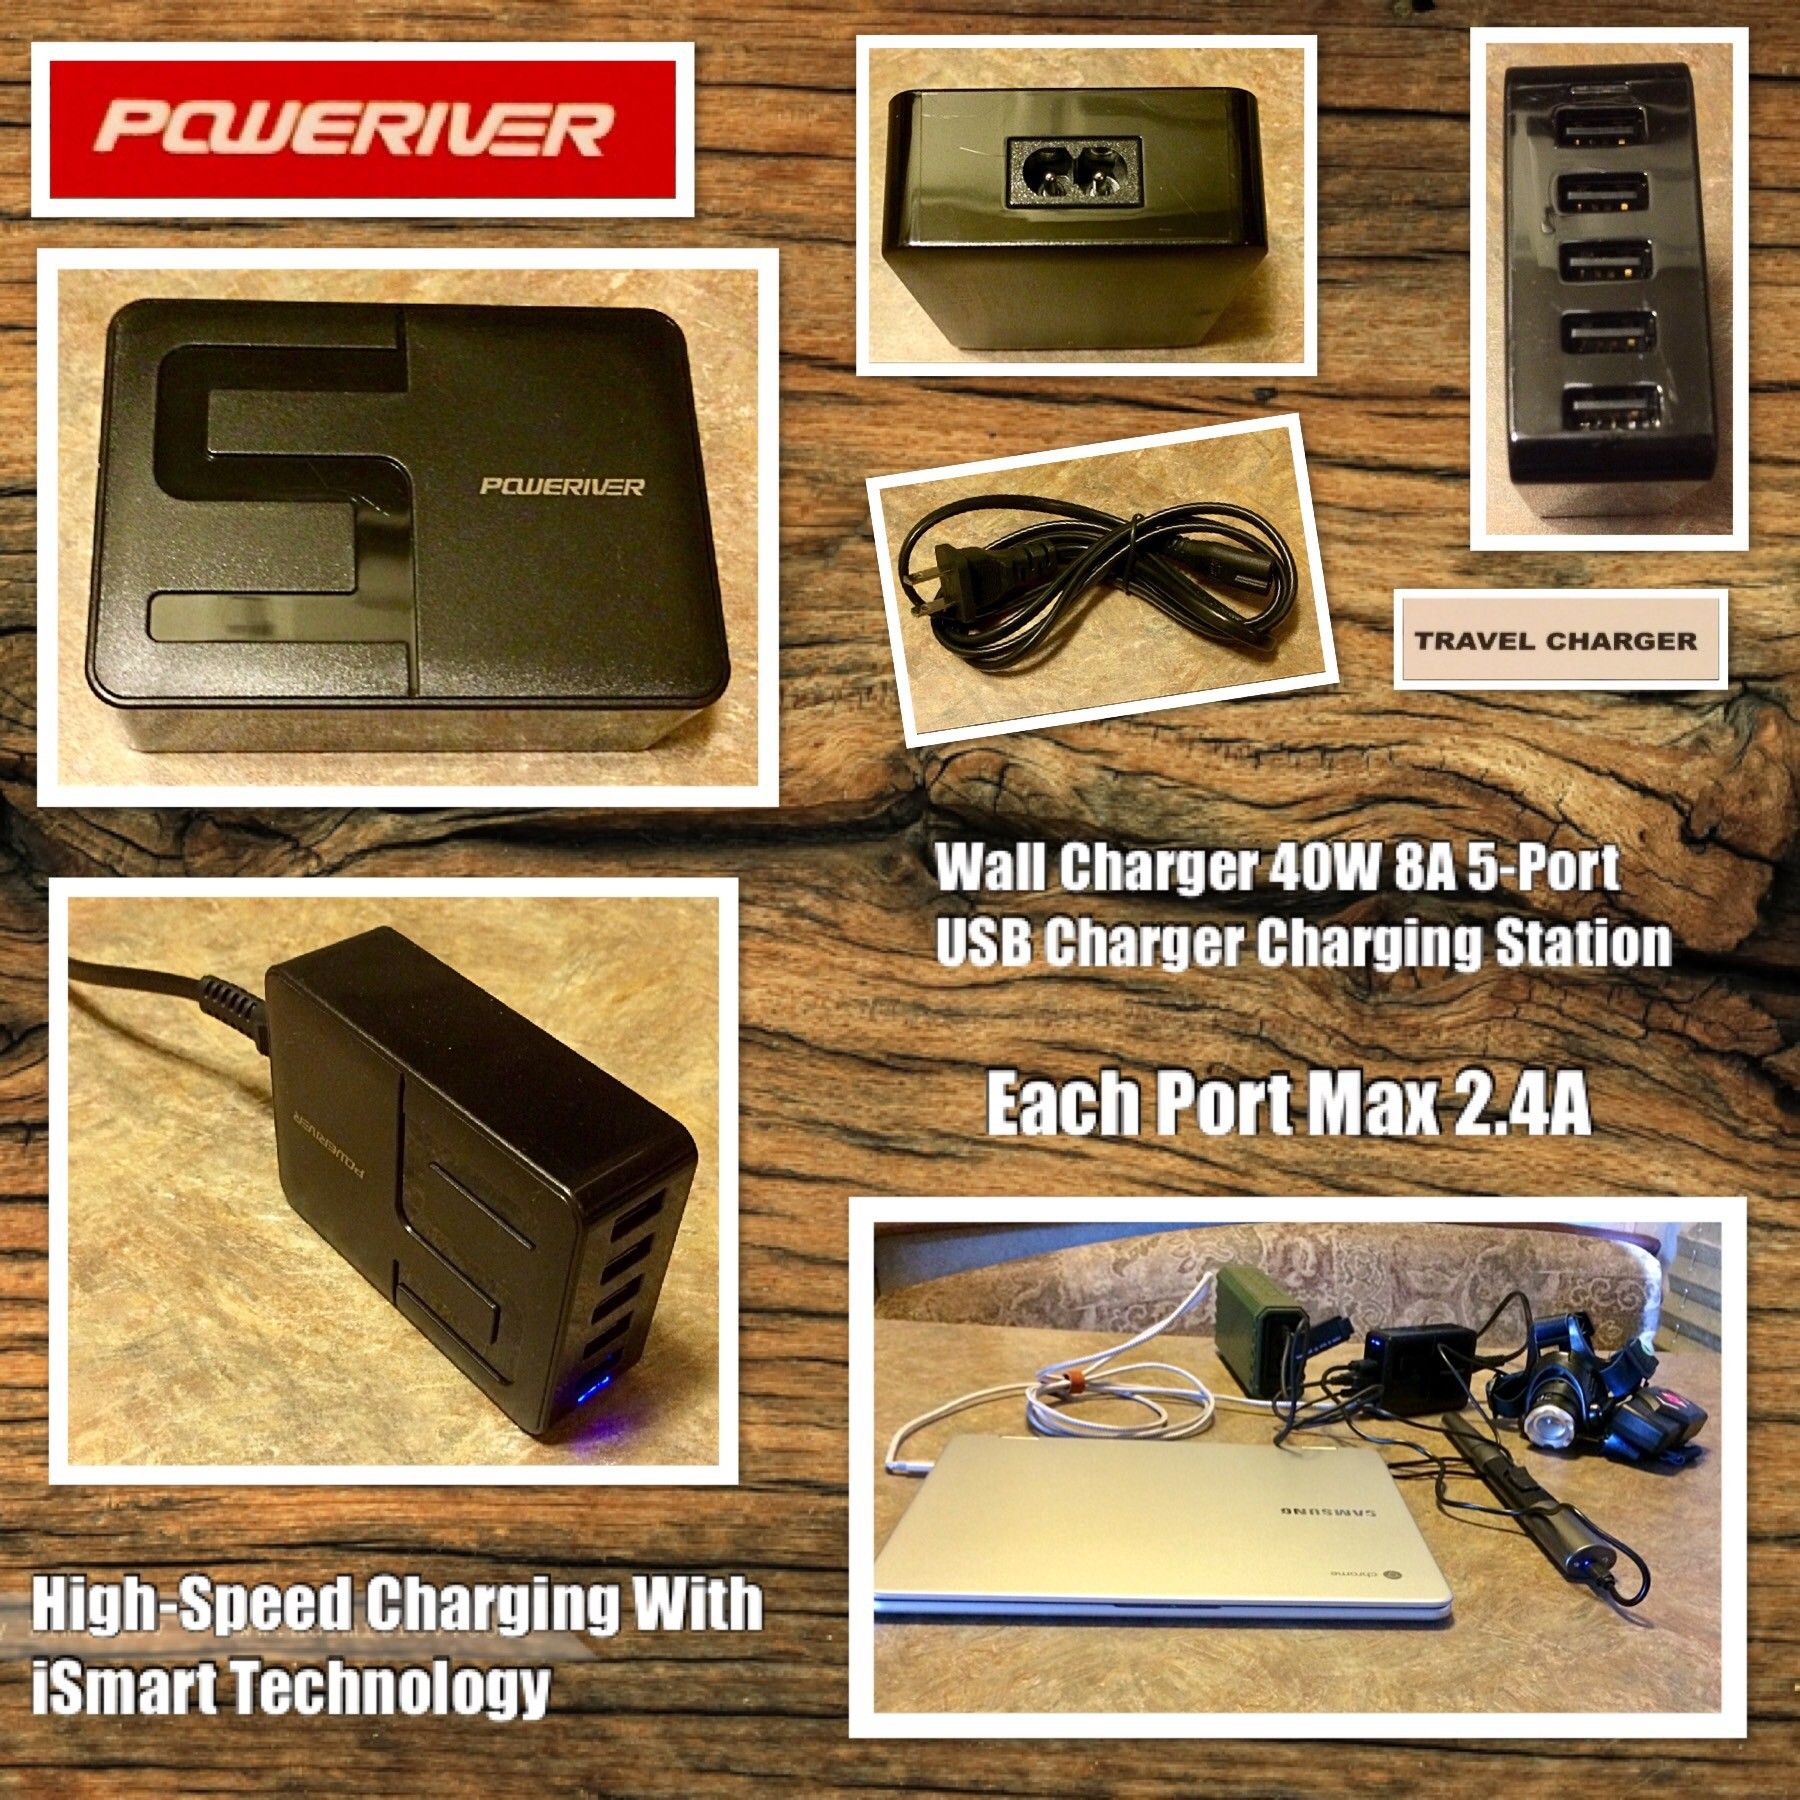 Wall Charger, POWERIVER 40W 8A 5-Port USB Charger Charging Station High-Speed Charging With [Smart Technology Each Port Max 2.4A - By Poweriver